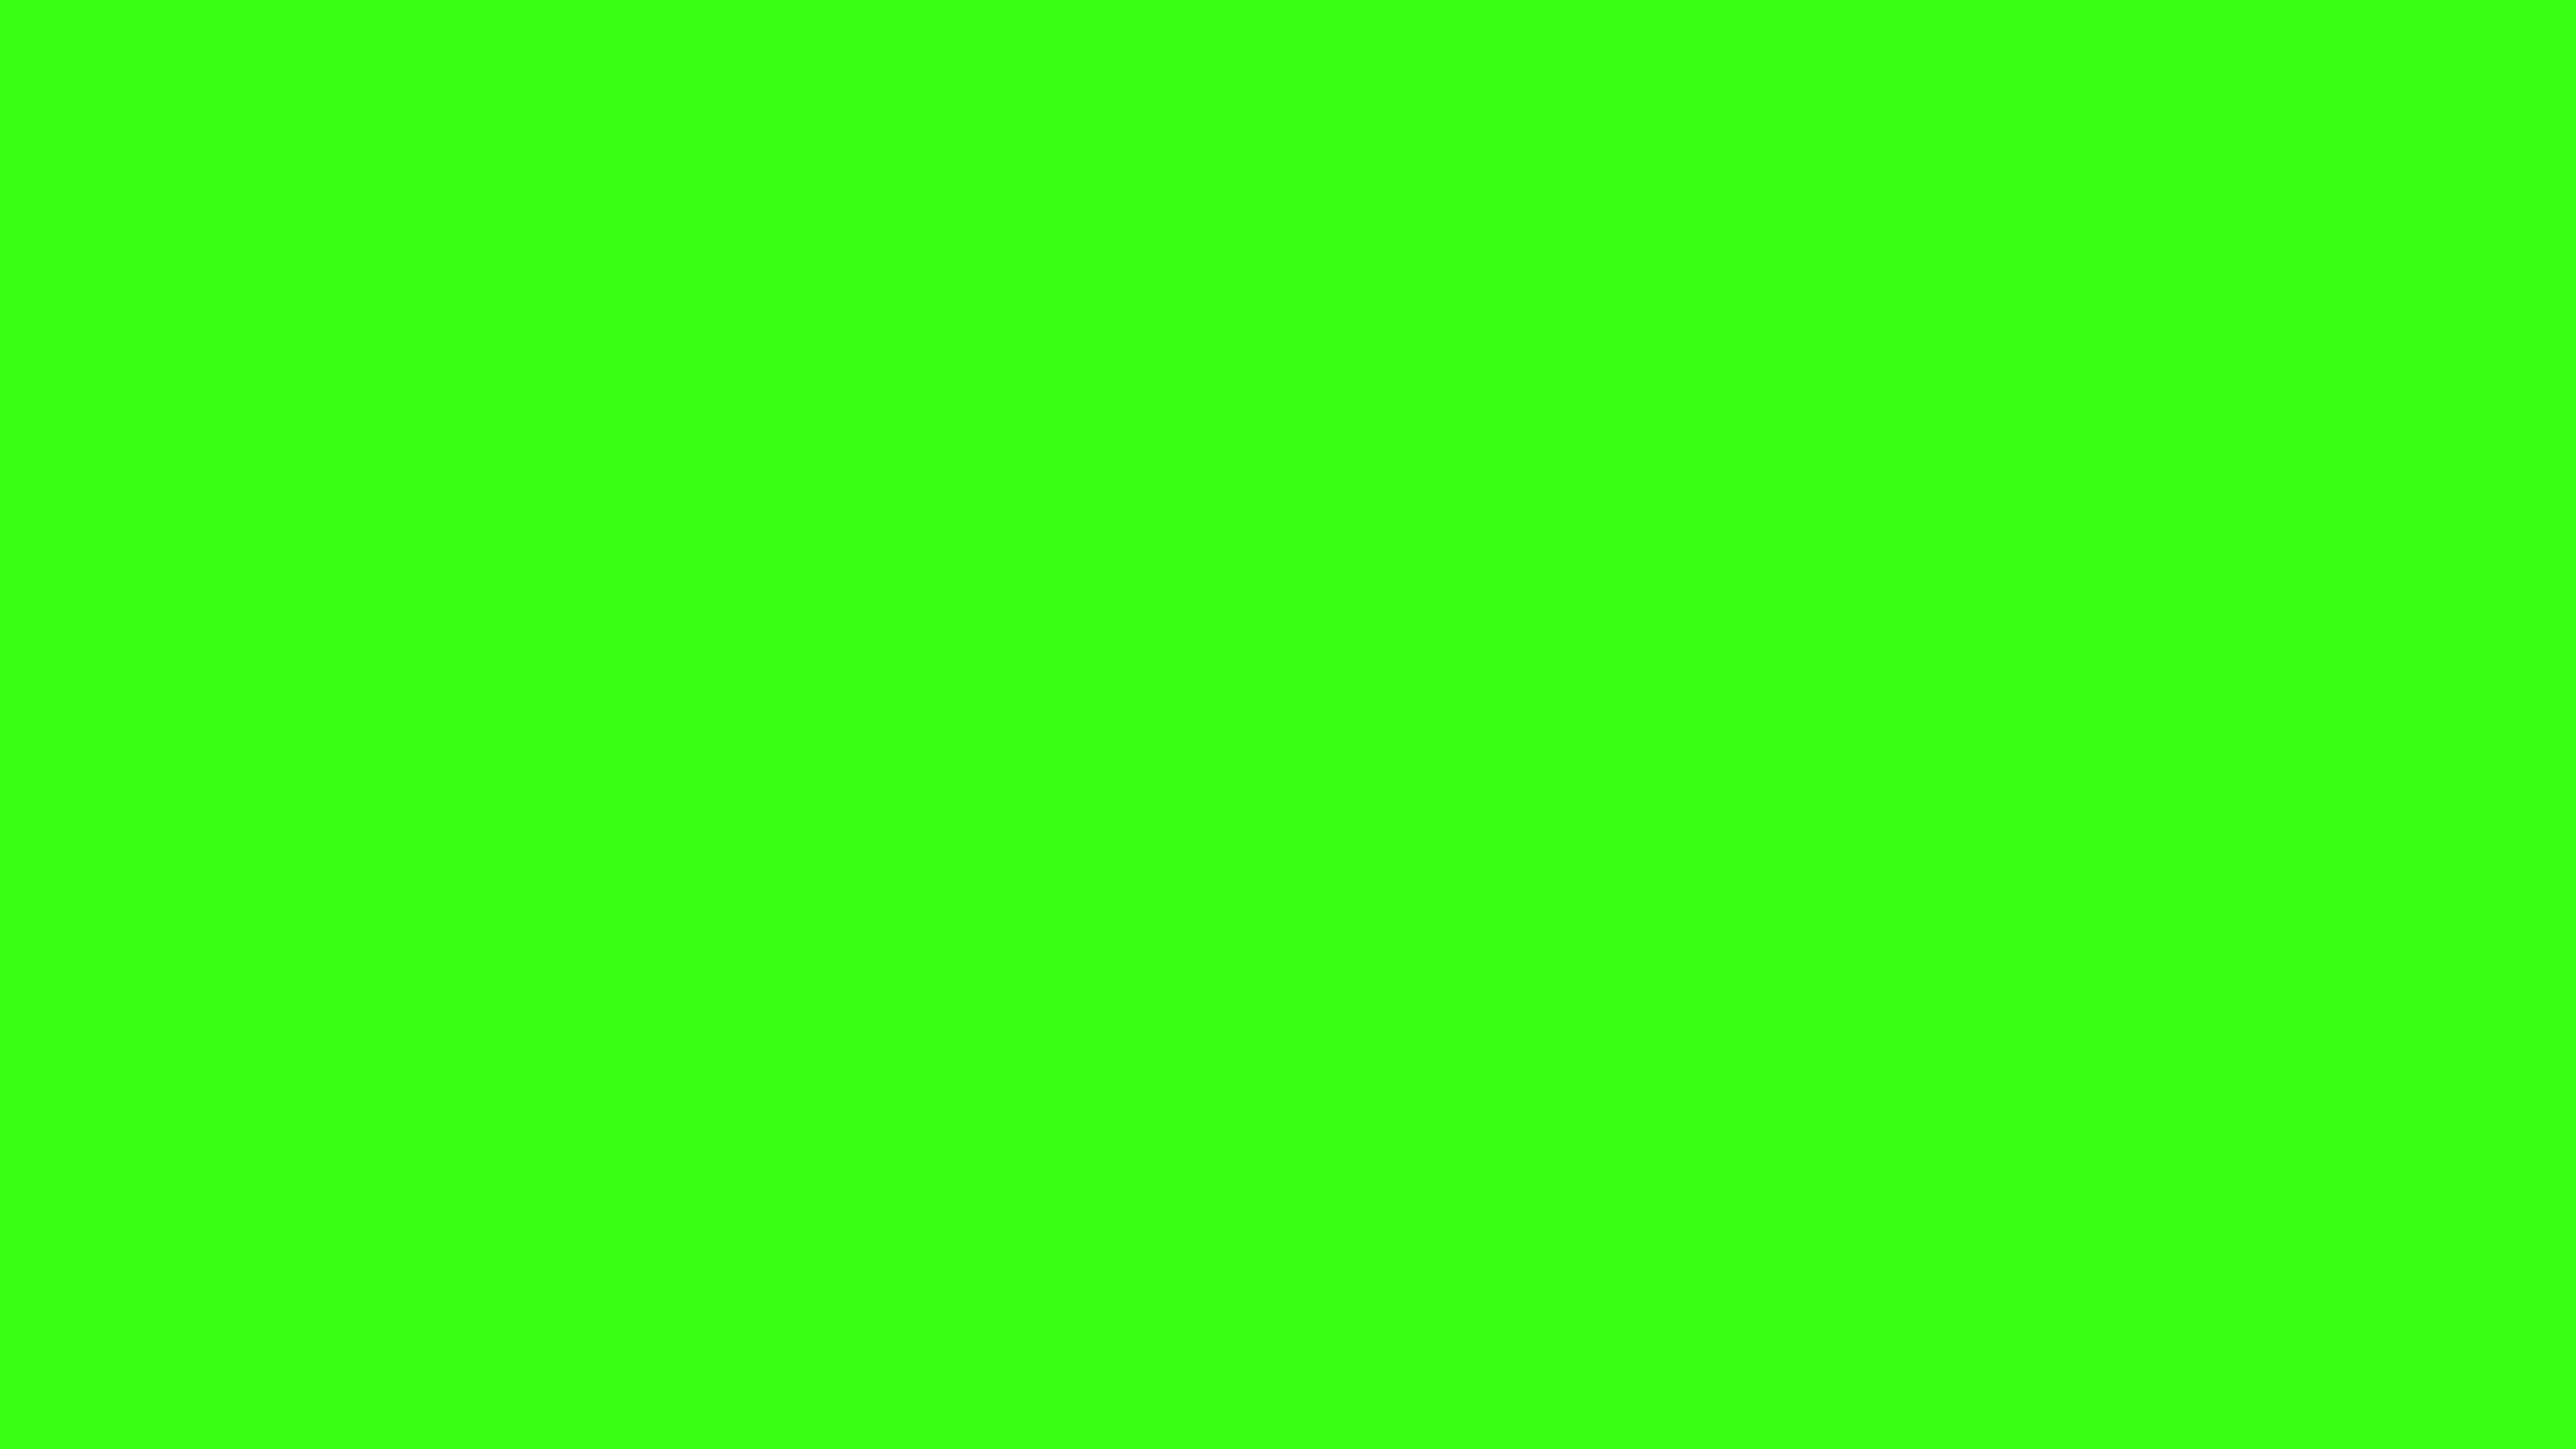 4096x2304 Neon Green Solid Color Background